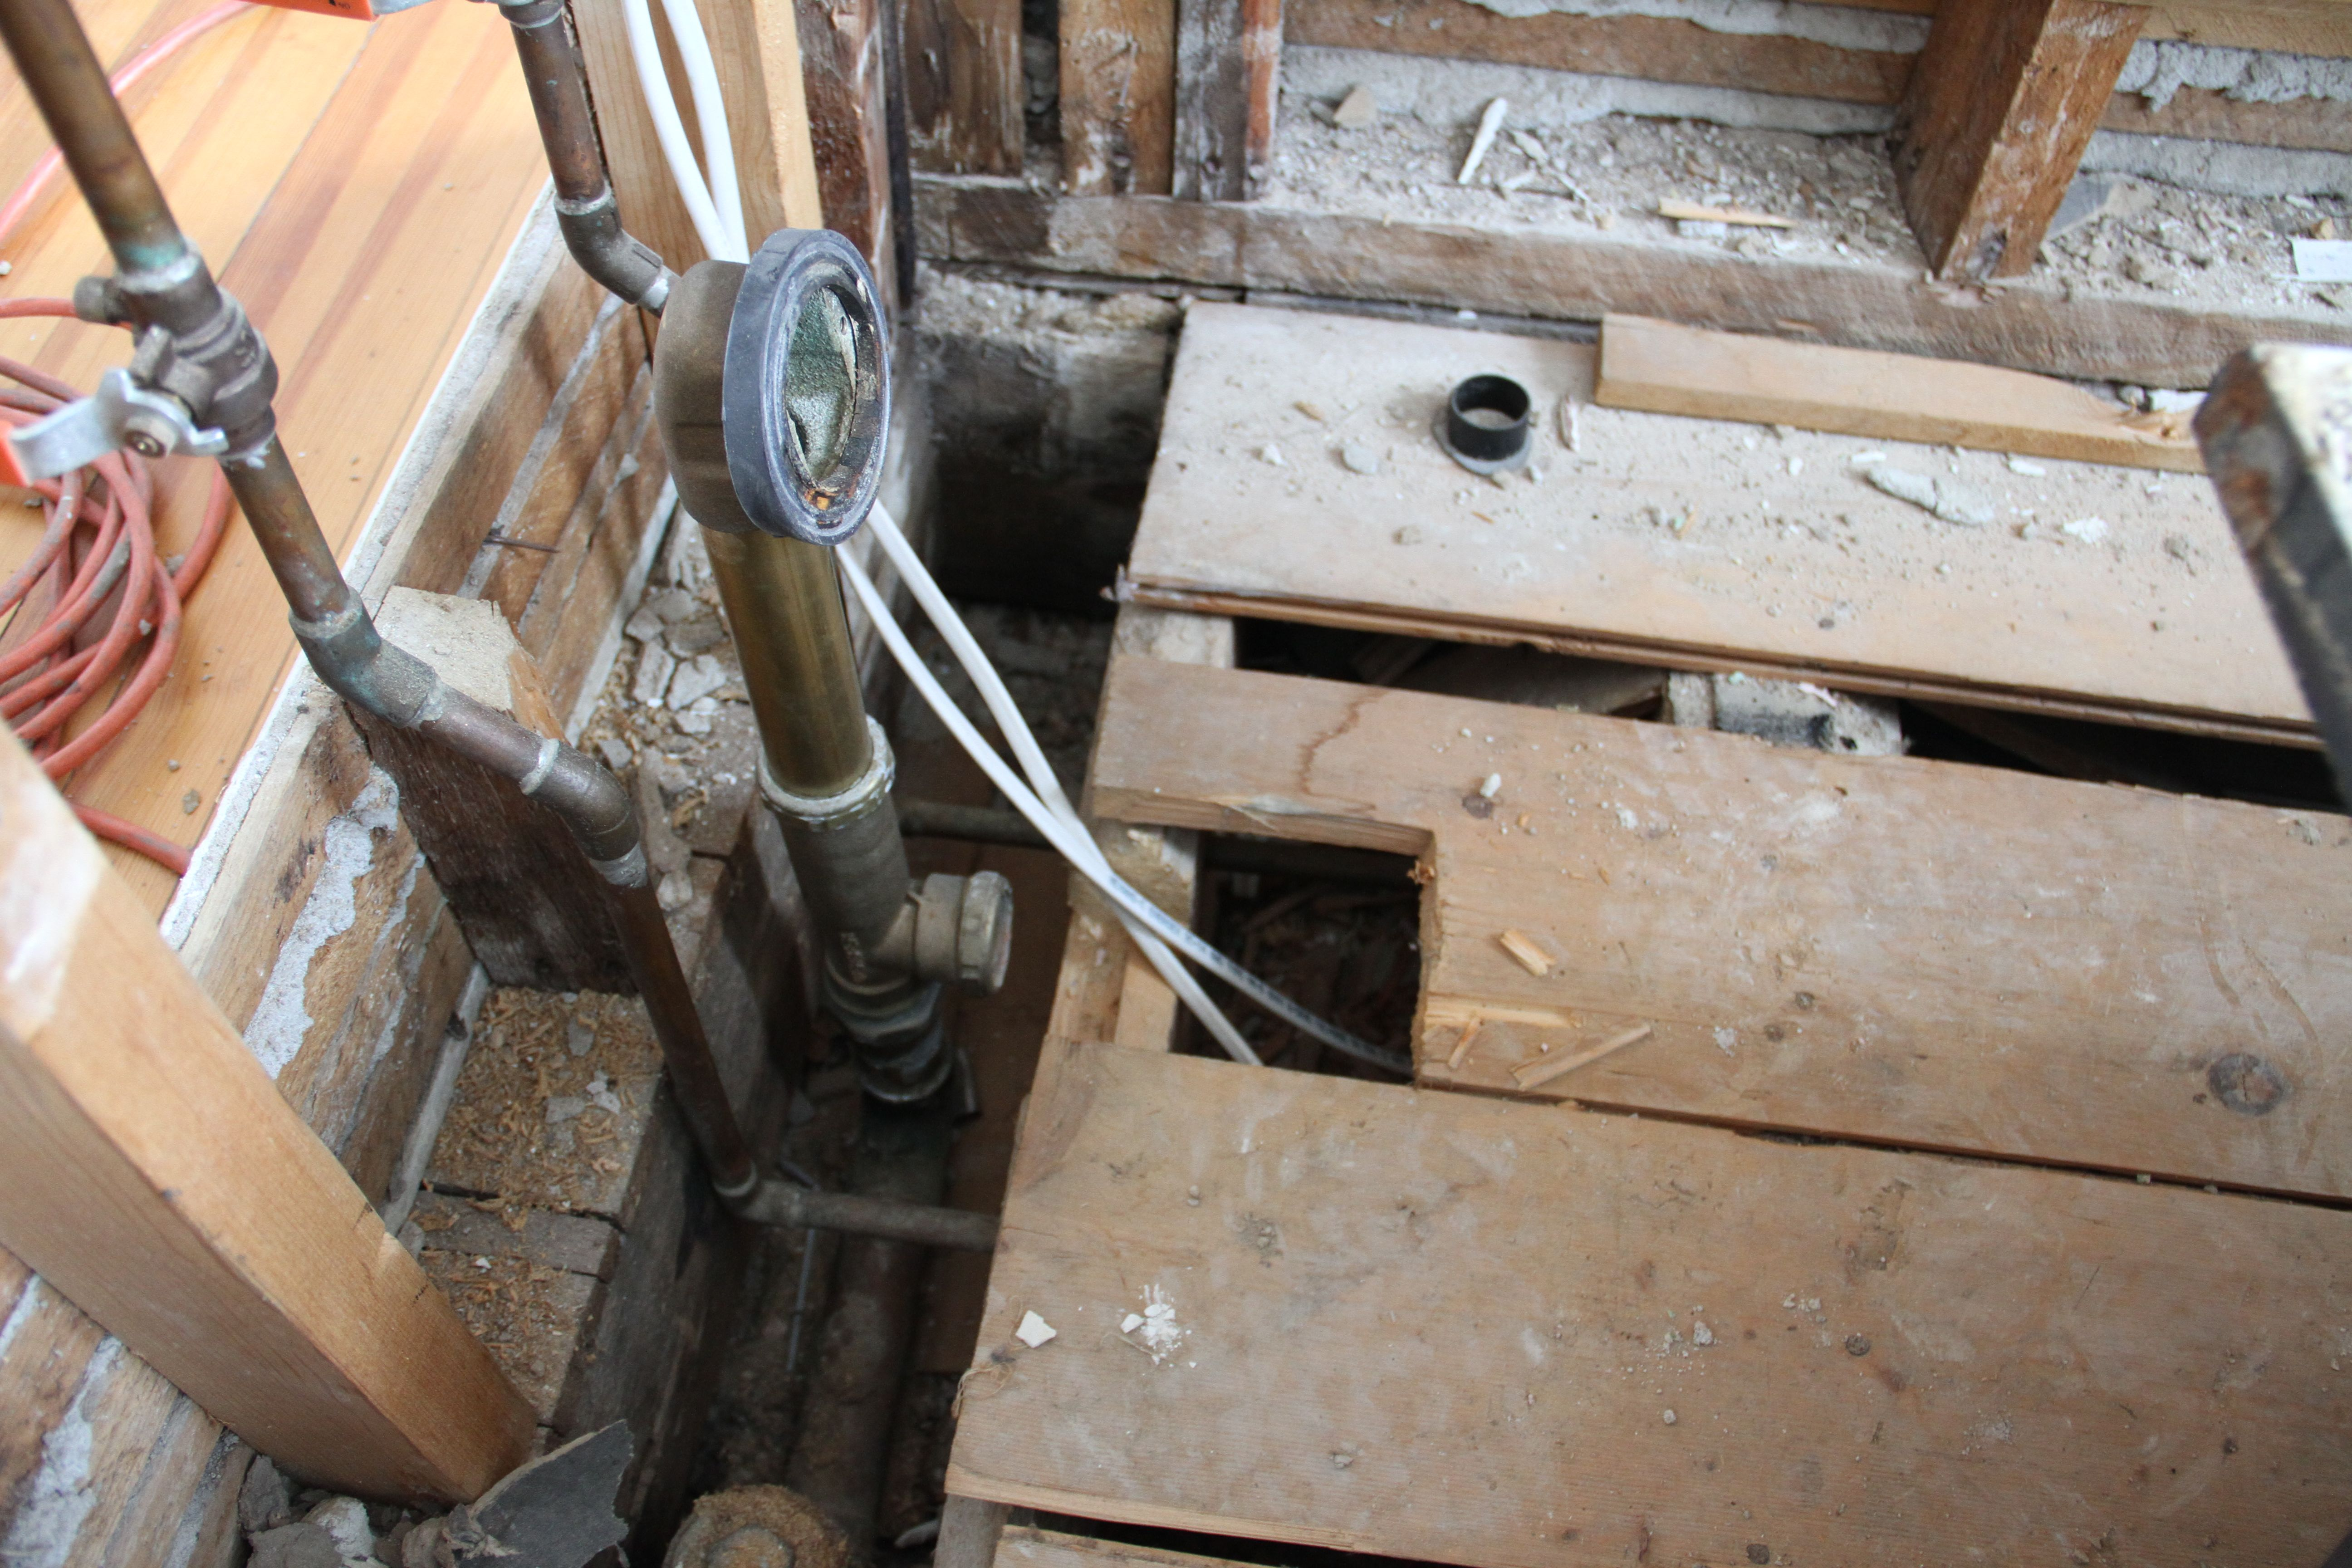 Here's where it gets tricky: see that little pipe beneath the floor? It needs to be less than 2 inches shorter since I bought a slightly wider tub.